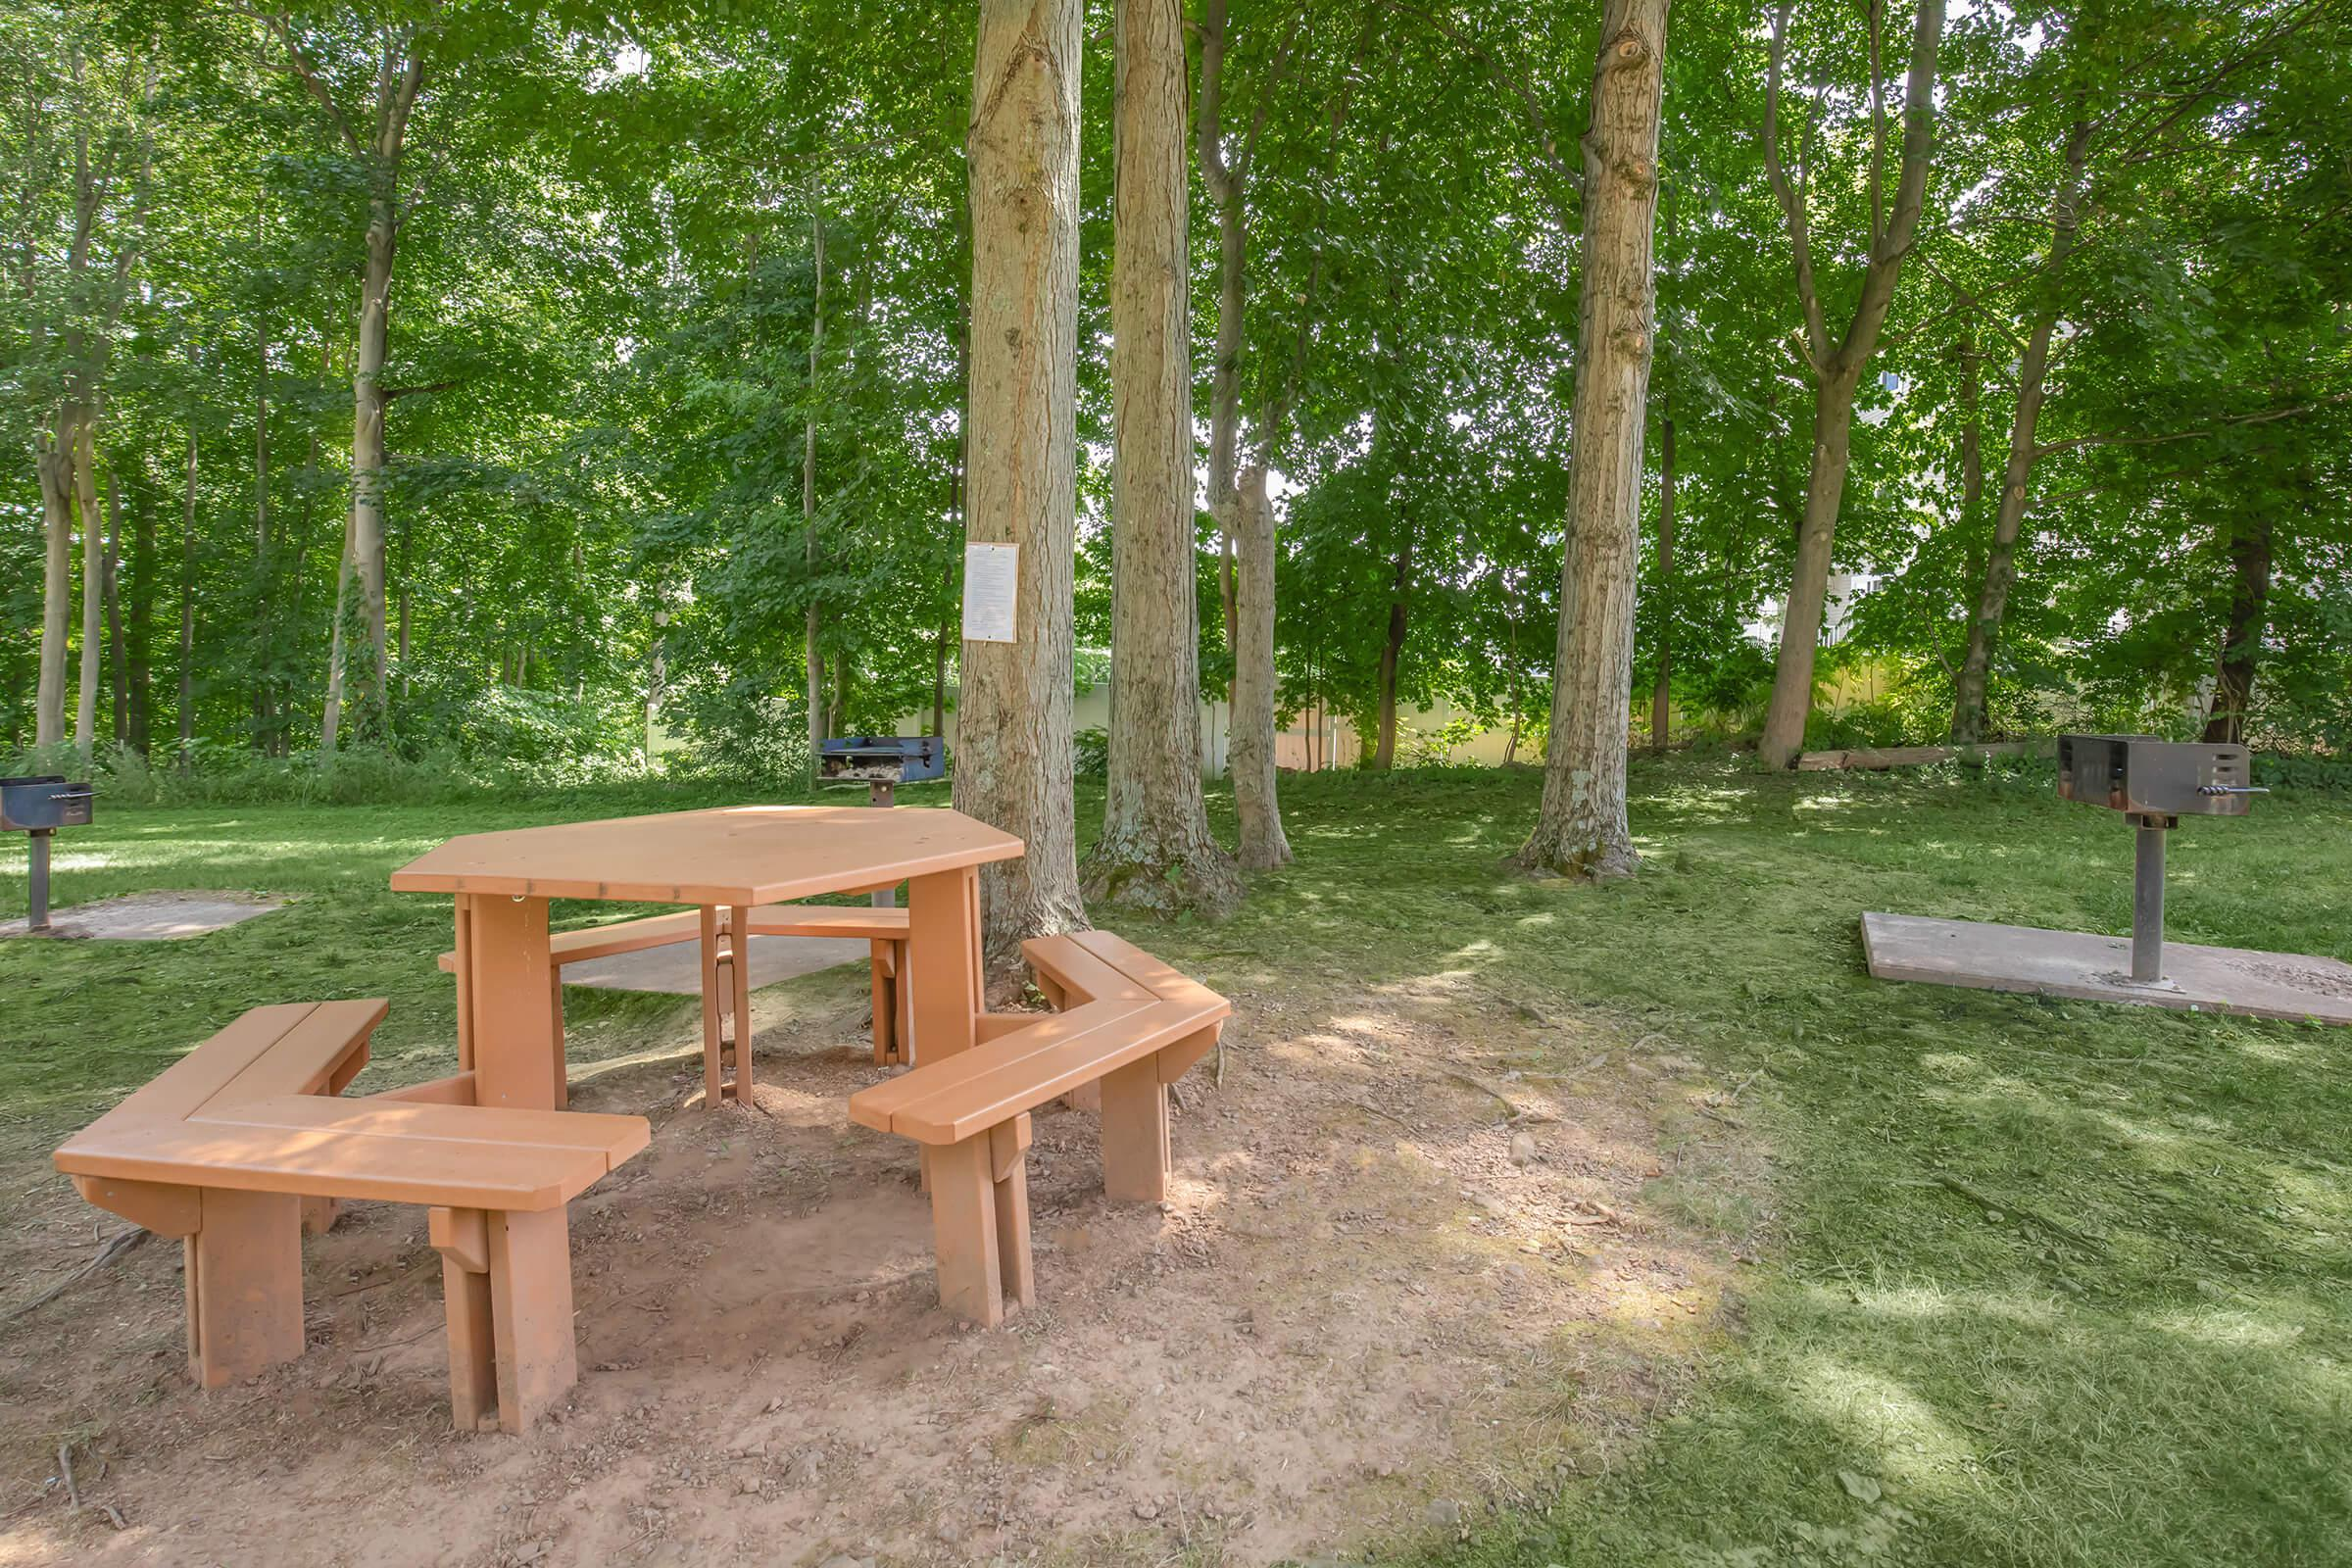 an empty park bench sitting on top of a wooden table